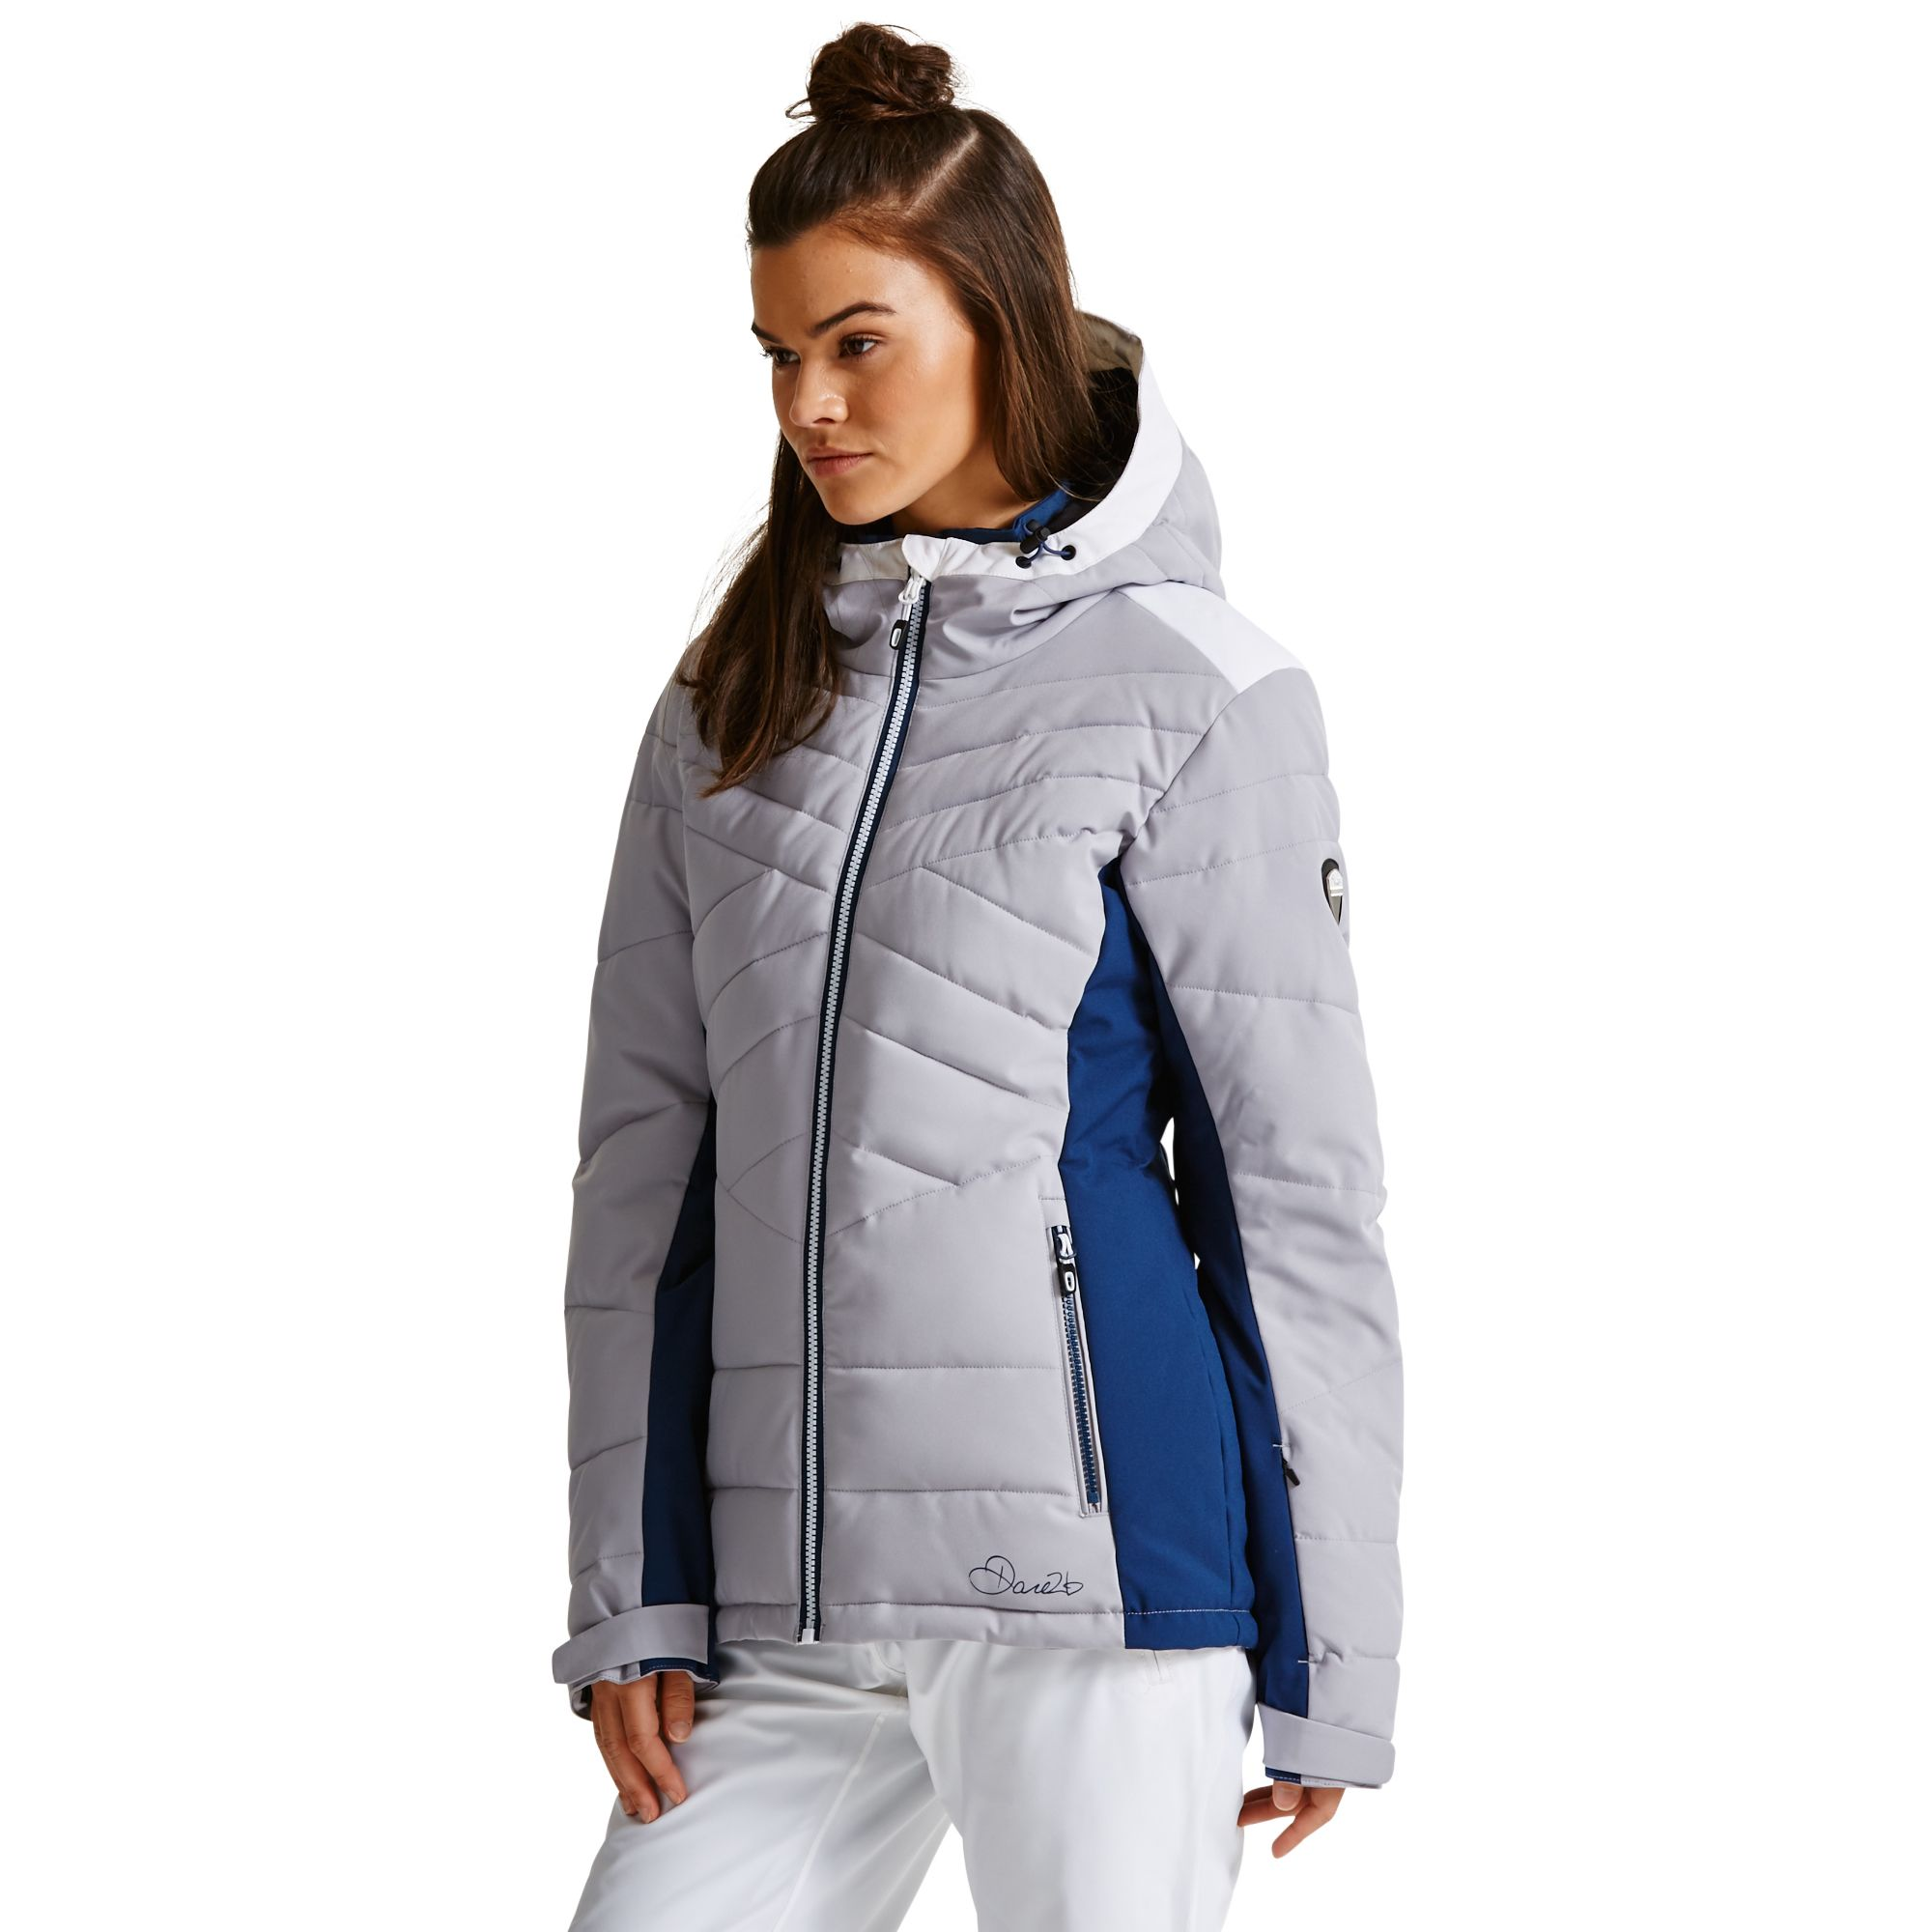 0ddbc1aa82 Dare2b Illation II Ski Jacket Womens - Run Charlie